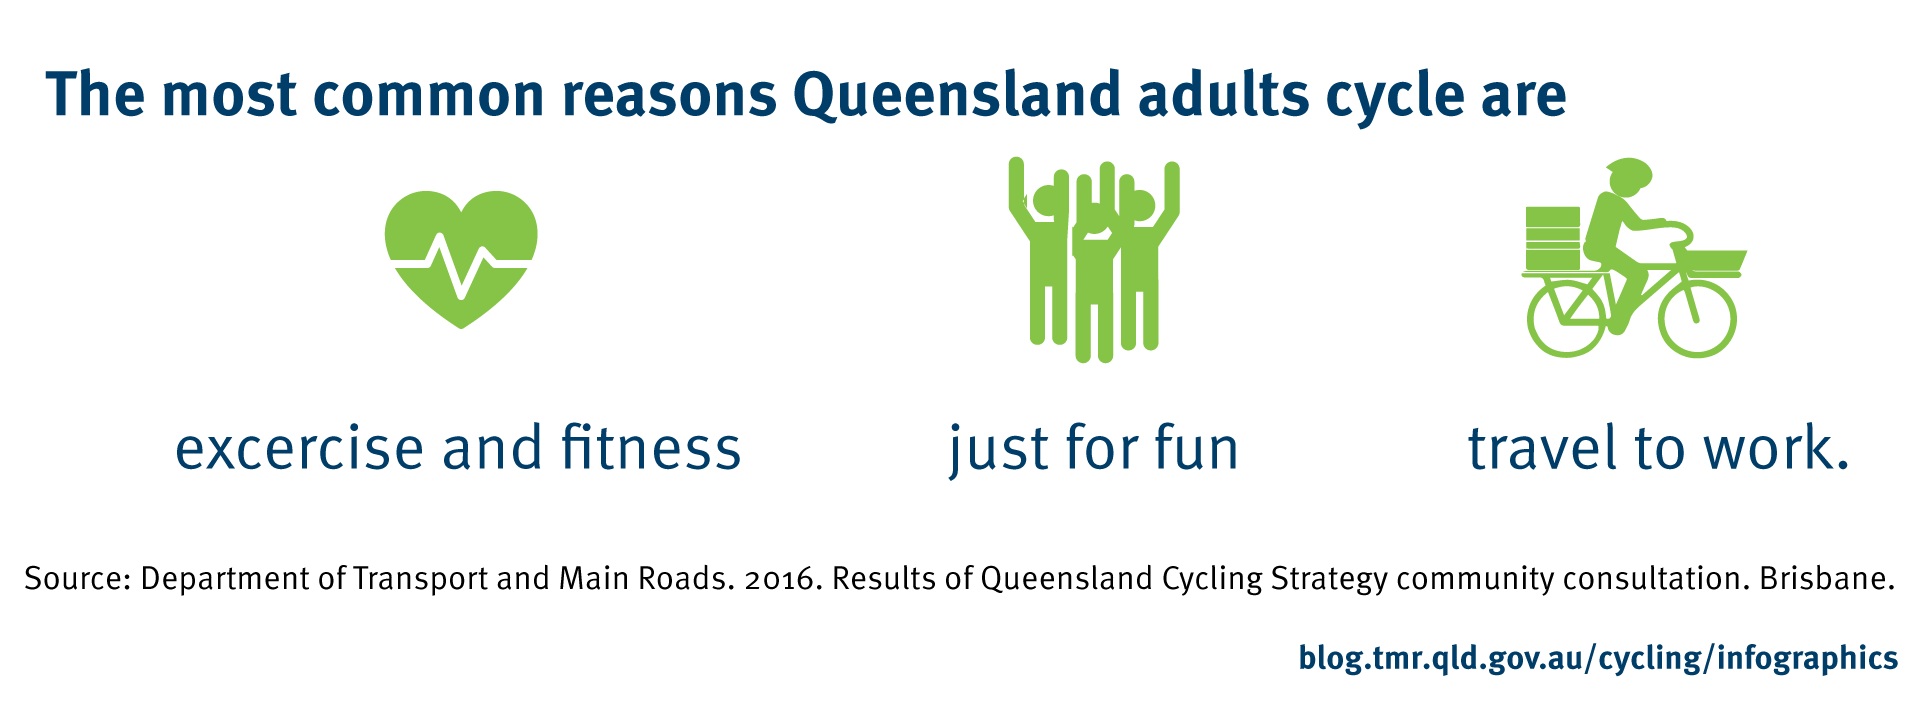 The most common reasons Queensland adults cycle are: for exercise and fitness, just for fun and for travel to work. Source: Department of Transport and Main Roads. 2016. Results of Queensland Cycling Strategy community consultation. Brisbane.